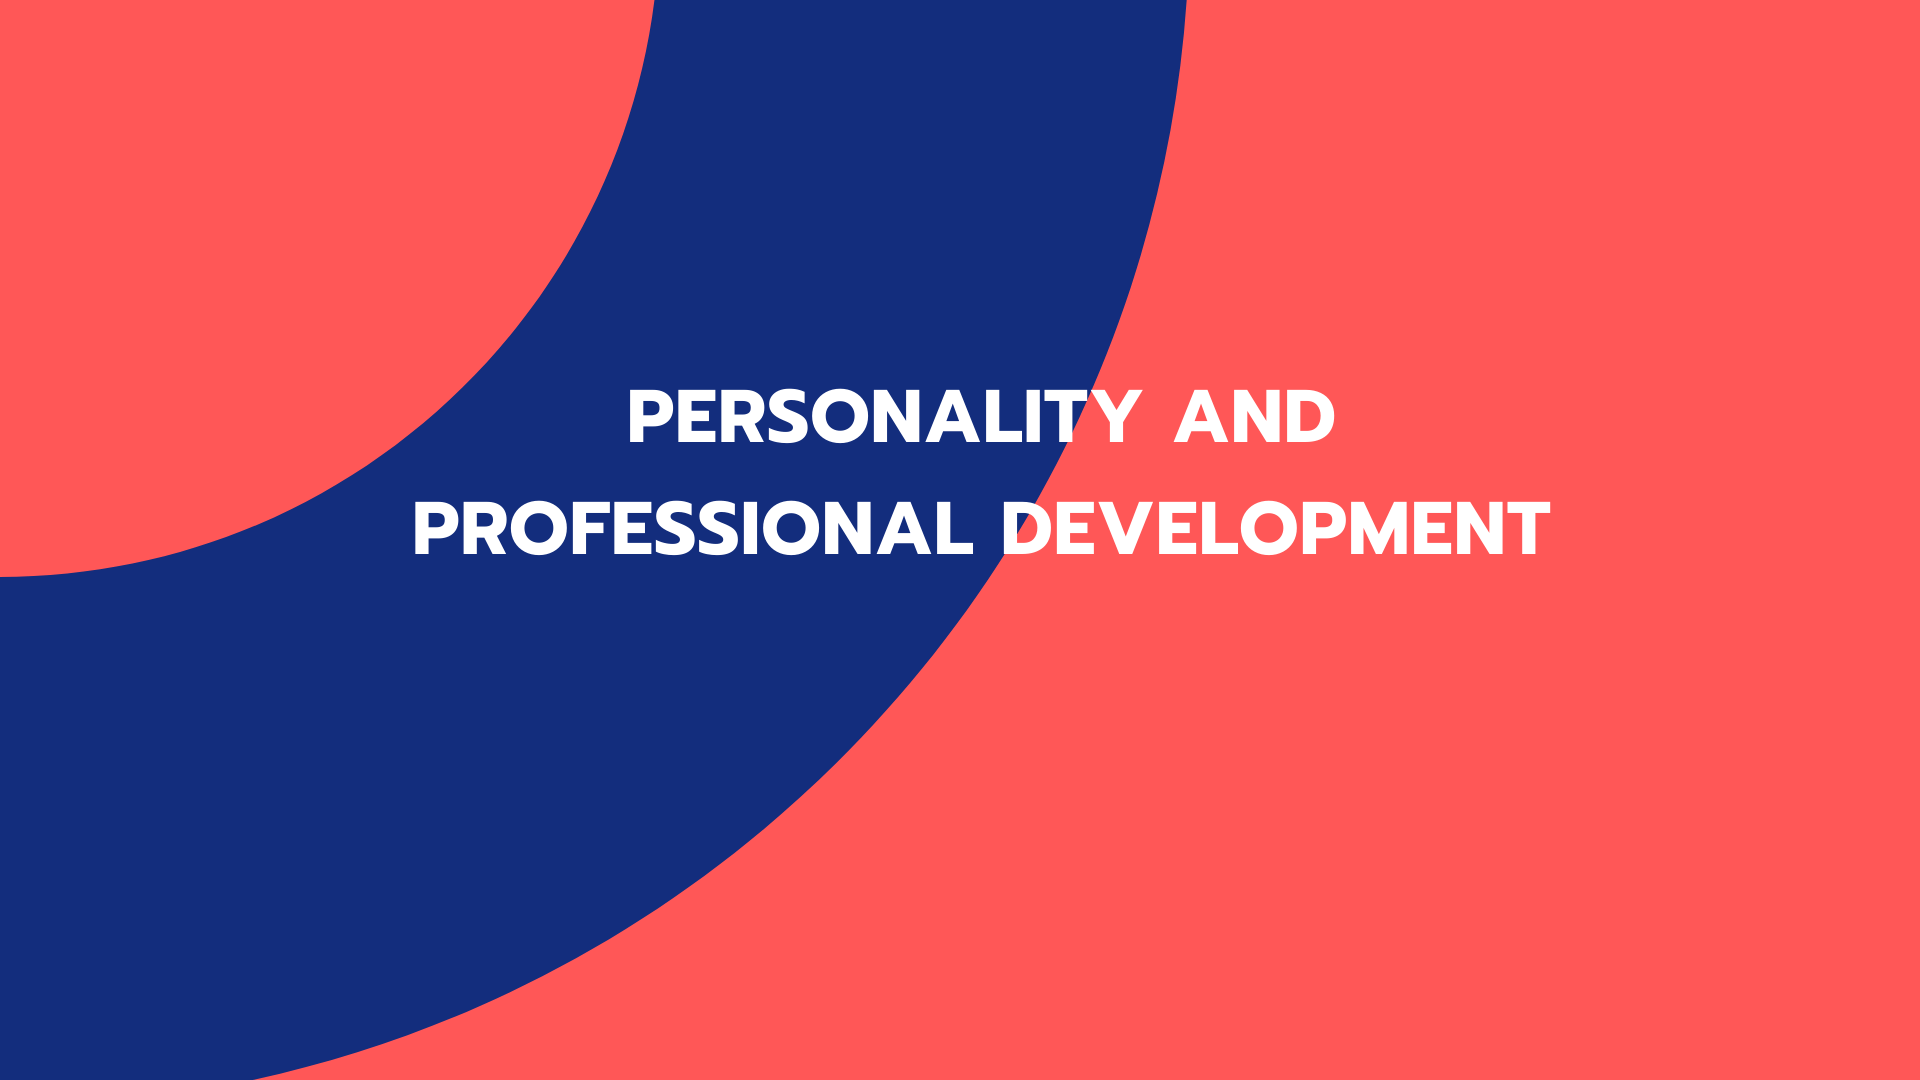 PERSONALITY AND PROFESSIONAL DEVELOPMENT